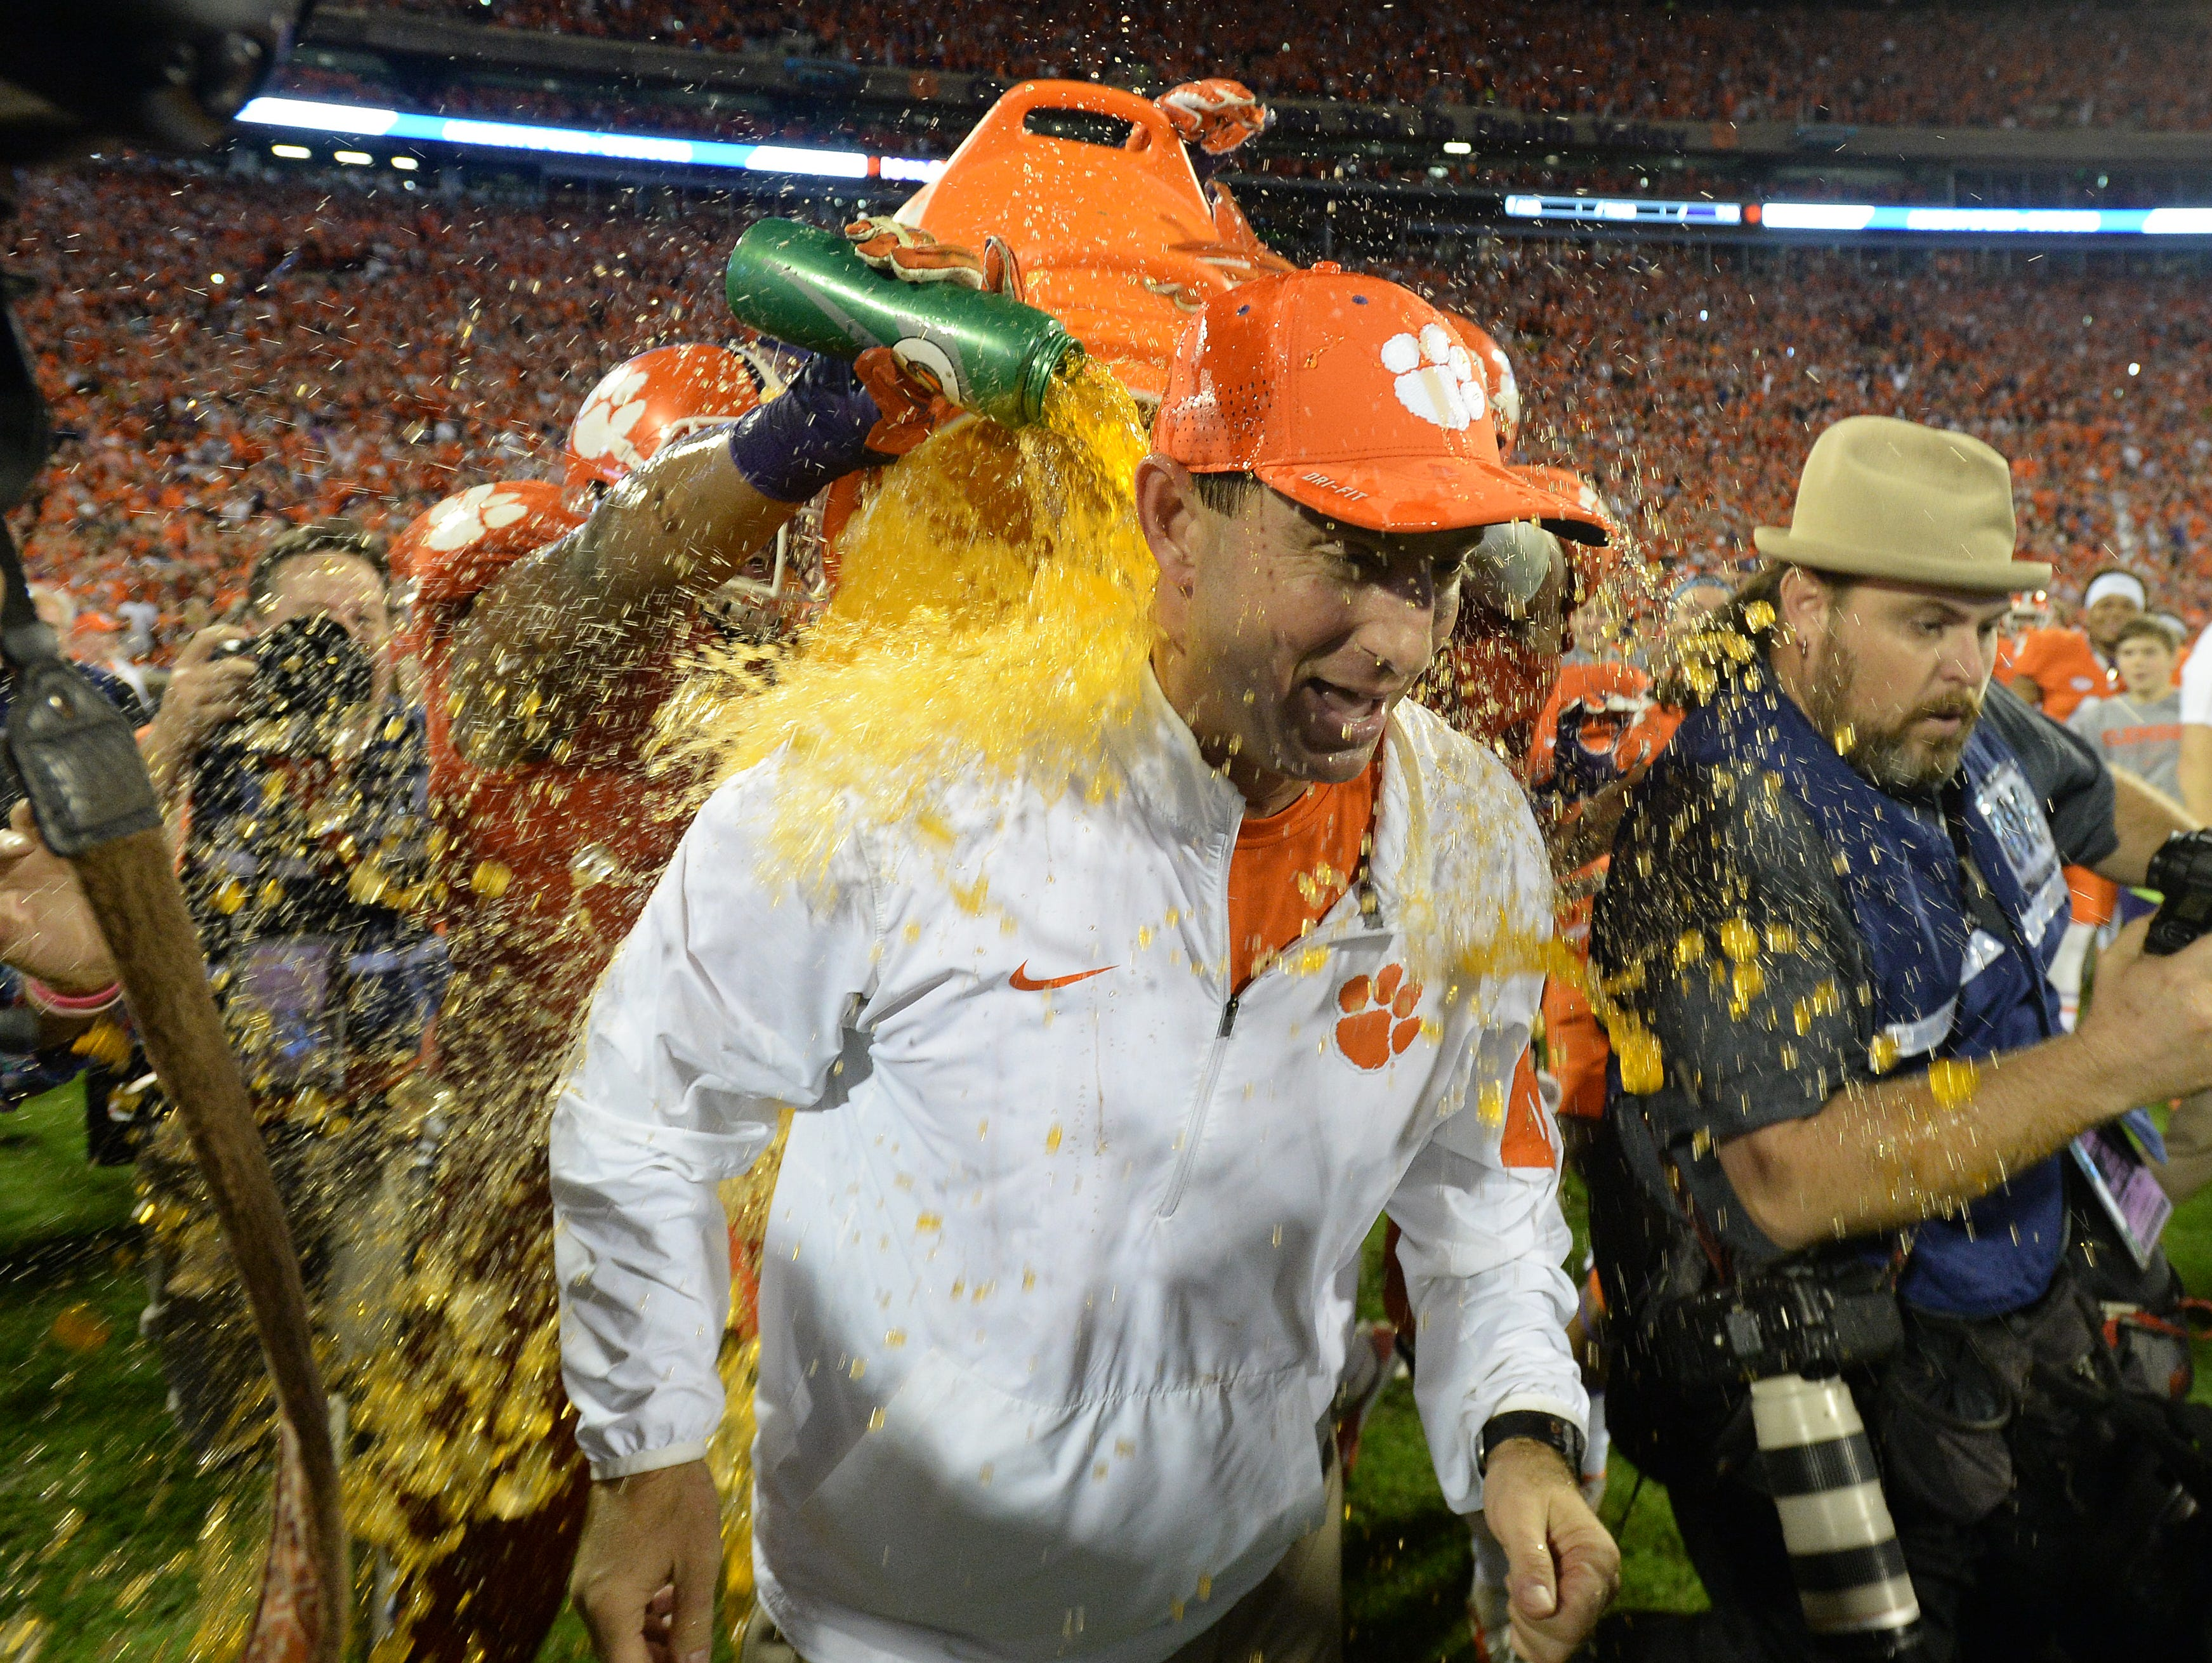 Clemson head coach Dabo Swinney is doused with Gatorade by running back C.J. Davidson (21) and running back Zac Brooks (24) after the Tigers 23-13 win over Florida State Saturday, November 7, 2015 at Clemson's Memorial Stadium.